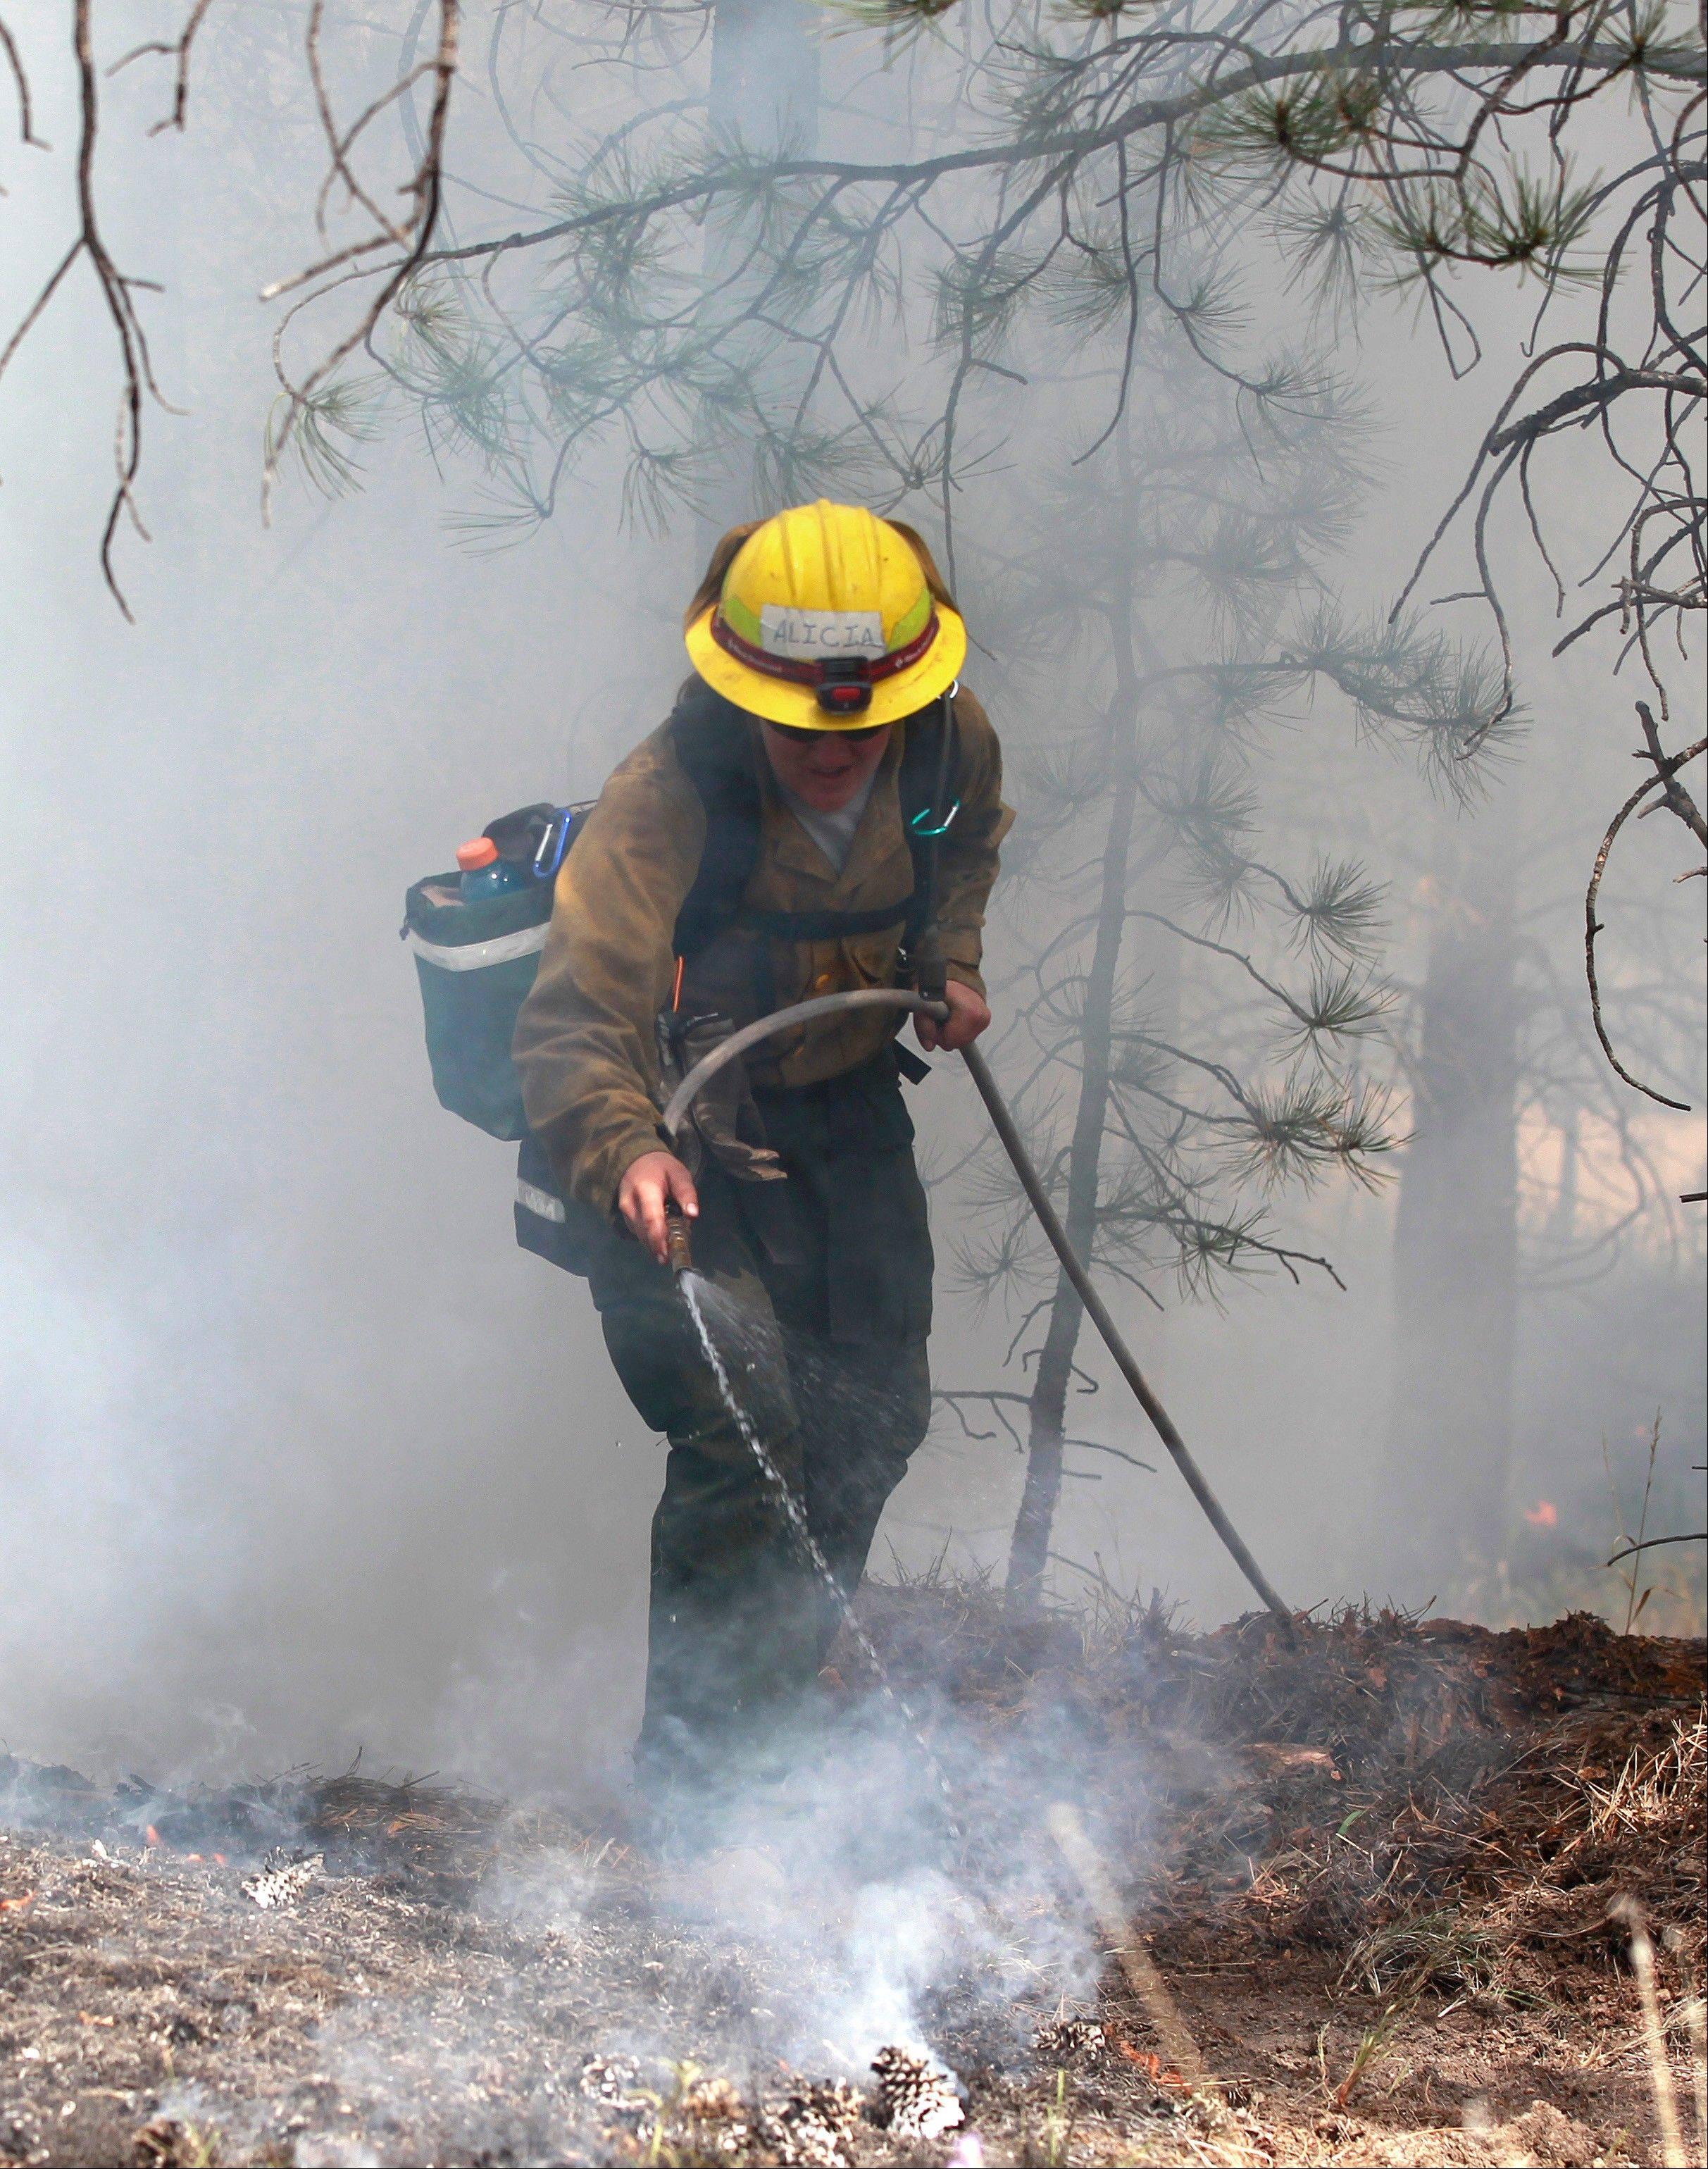 An AmeriCorps volunteer firefighter assigned to the El Paso County Sheriff's Office, Woodland Fire Crew, helps contain a spot fire Thursday in an evacuated area of forest, ranches and residences, in the Black Forest wildfire area near Colorado Springs.